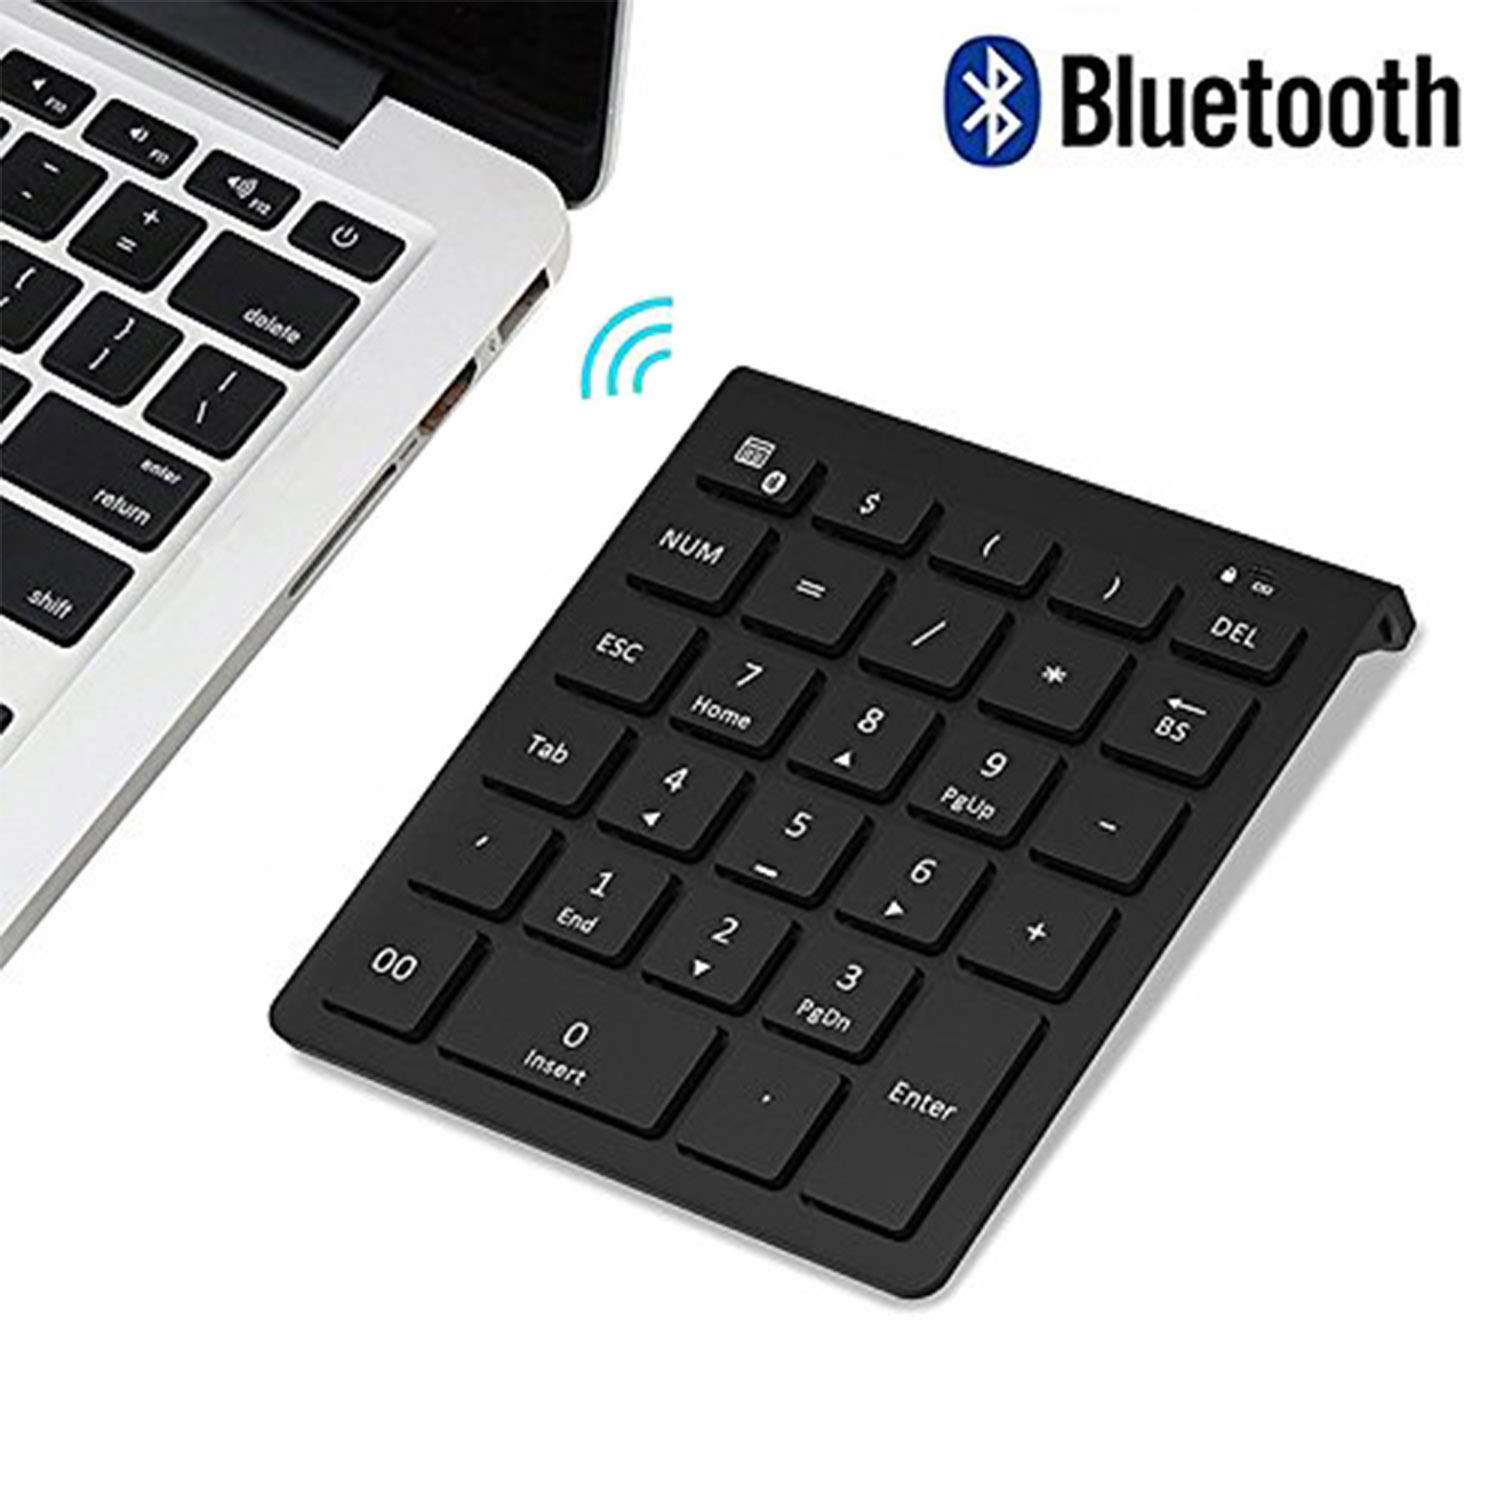 Bluetooth Number Pad, Lekvey Portable Wireless Bluetooth 28-Key Numeric Keypad Keyboard Extensions for Financial Accounting Data Entry for Smartphones, Tablets, Surface Pro, Windows, Laptop and More by LEKVEY